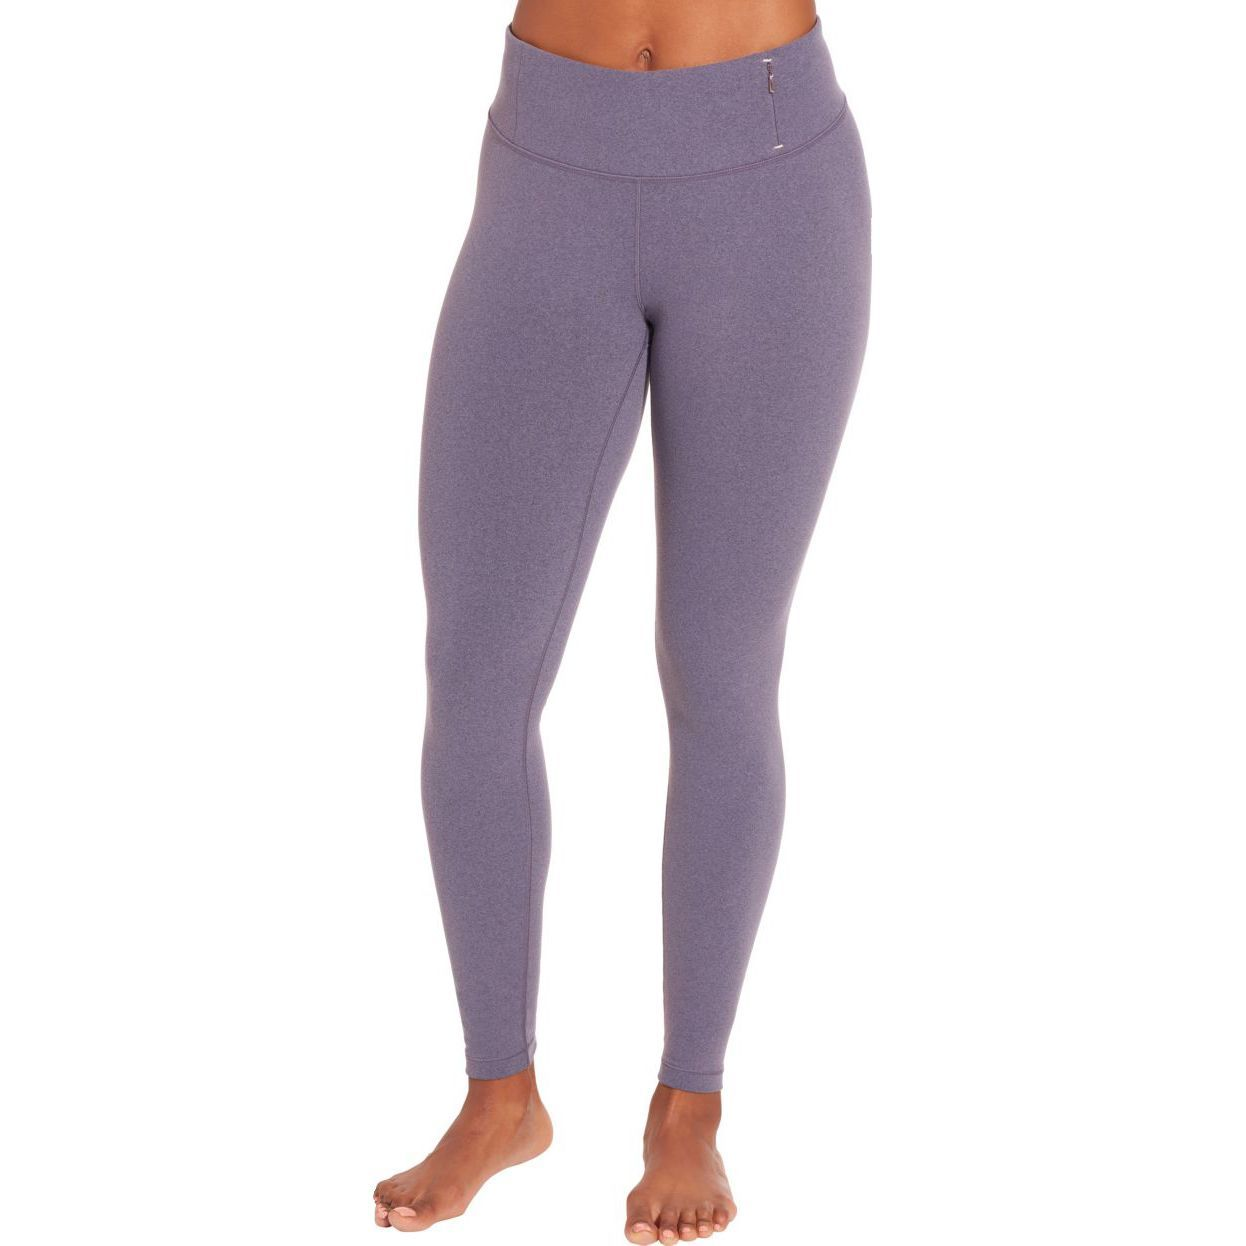 42256a4f62252 Best Leggings With Pockets - Workout Leggings With Pockets